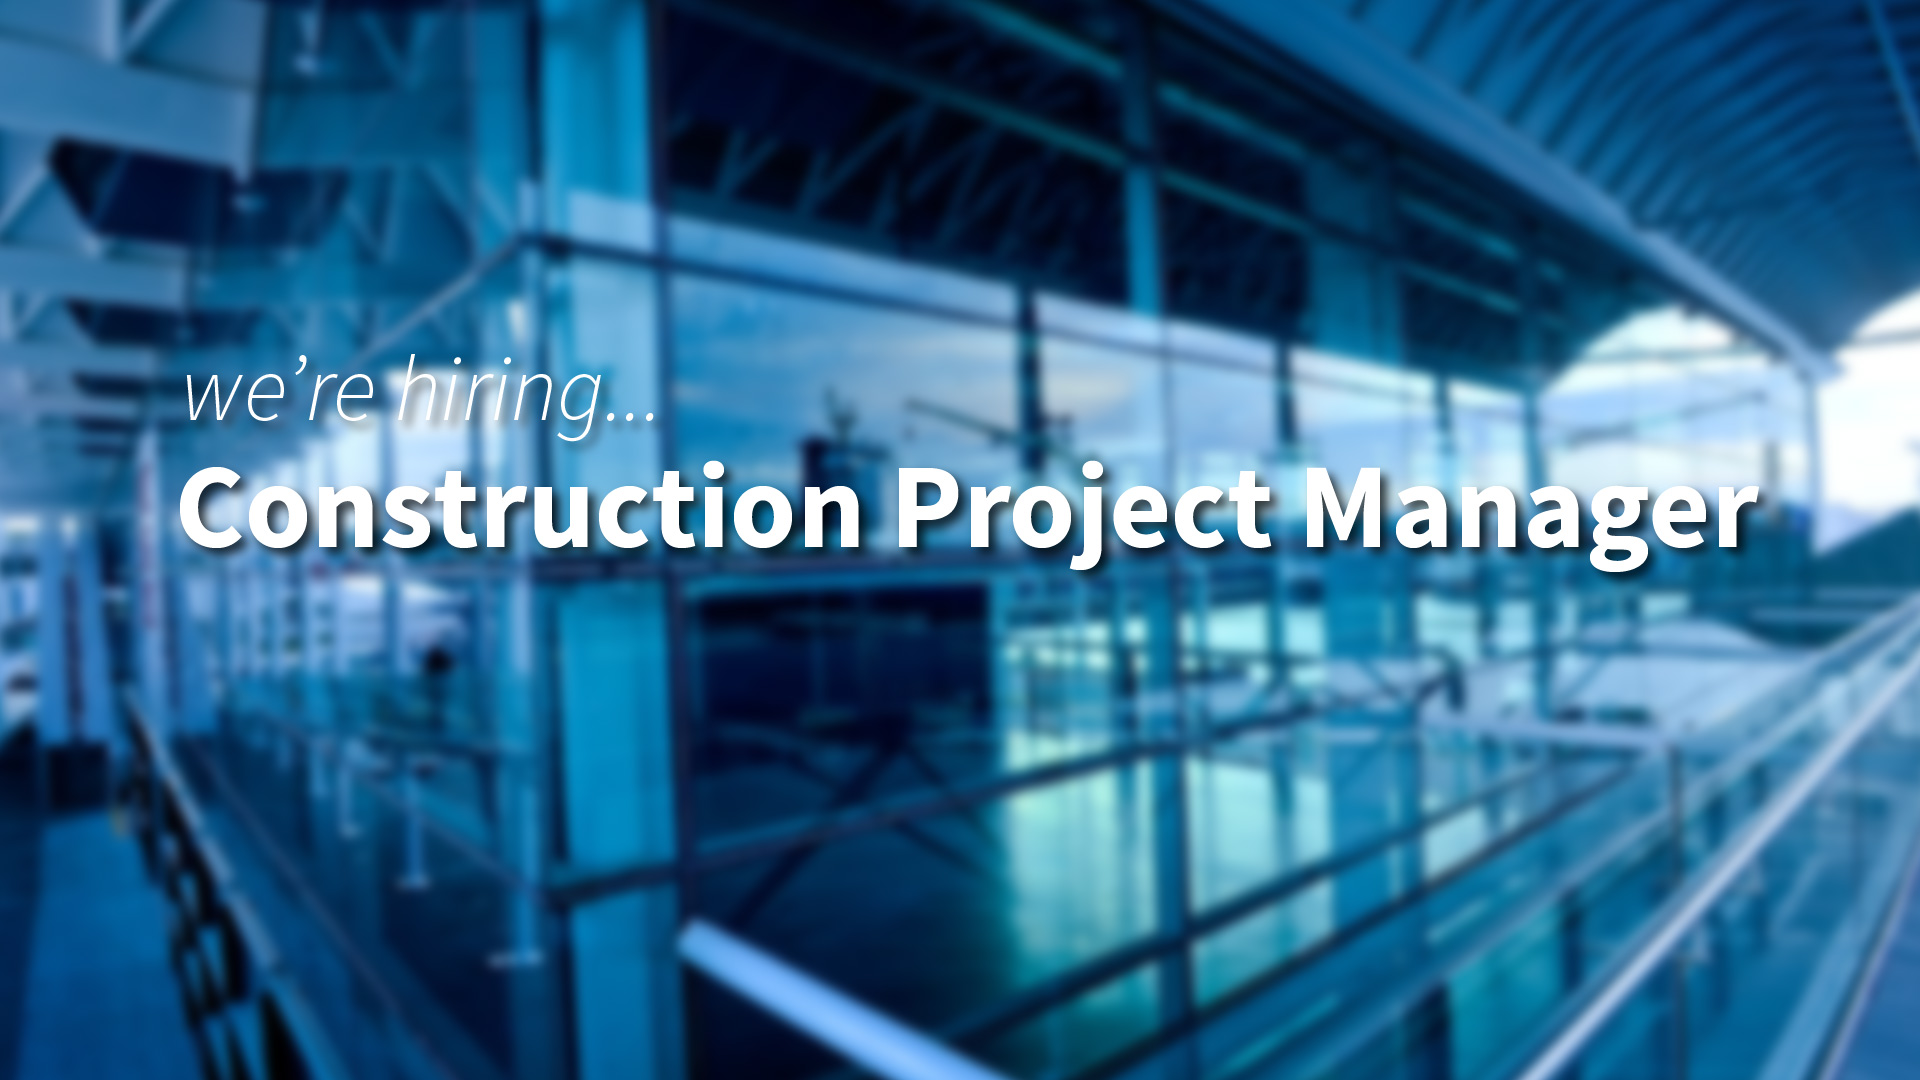 construction-project-manager-recruitment-careers-opportunity